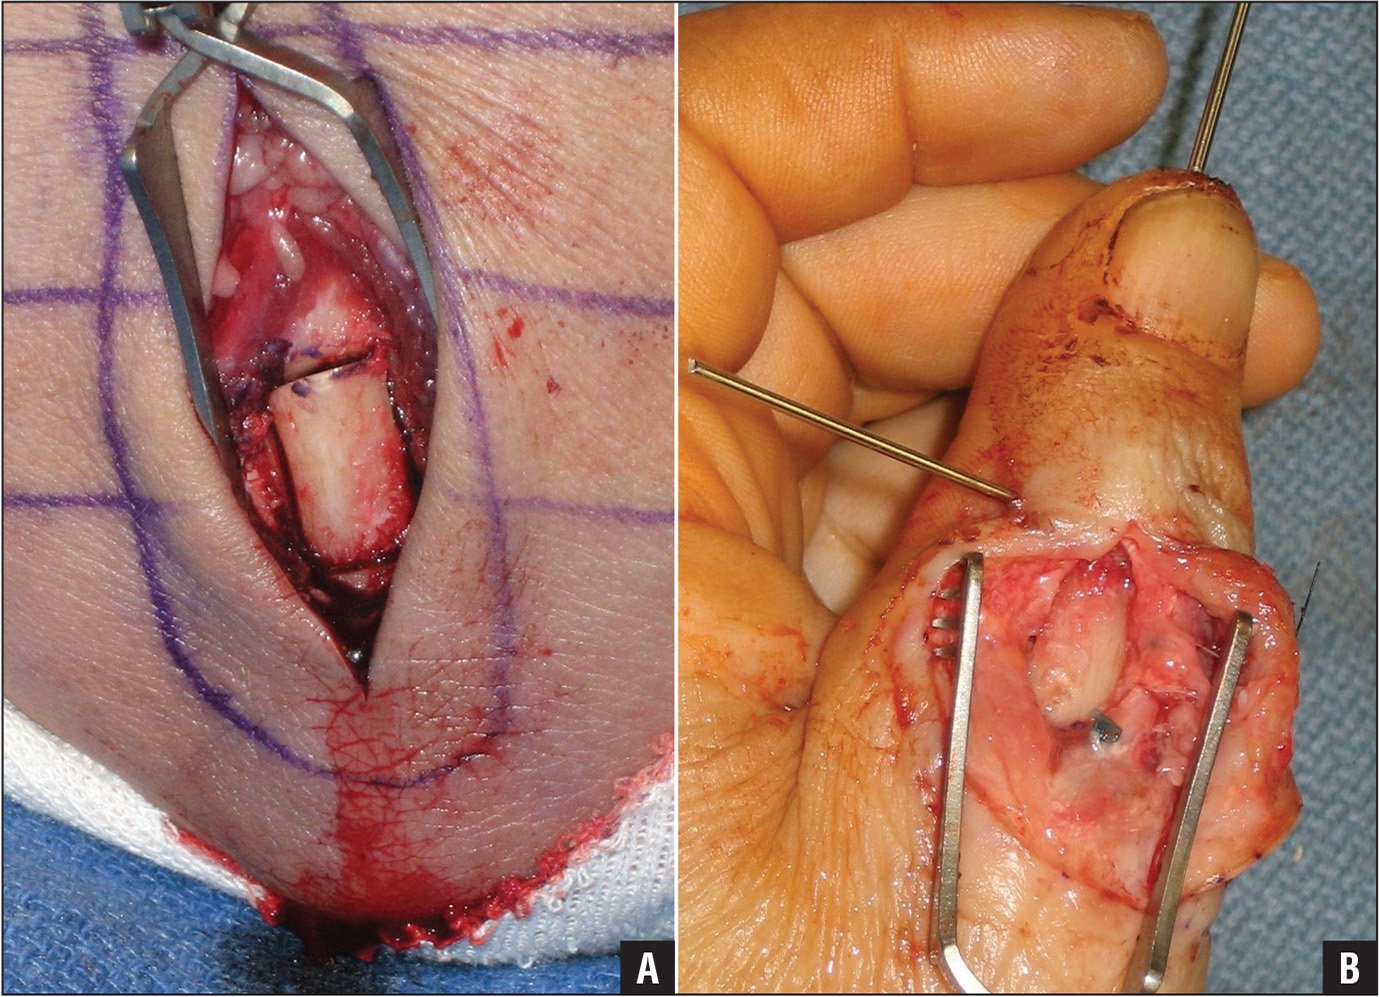 Harvest (A) and placement of the olecranon bone graft (B).